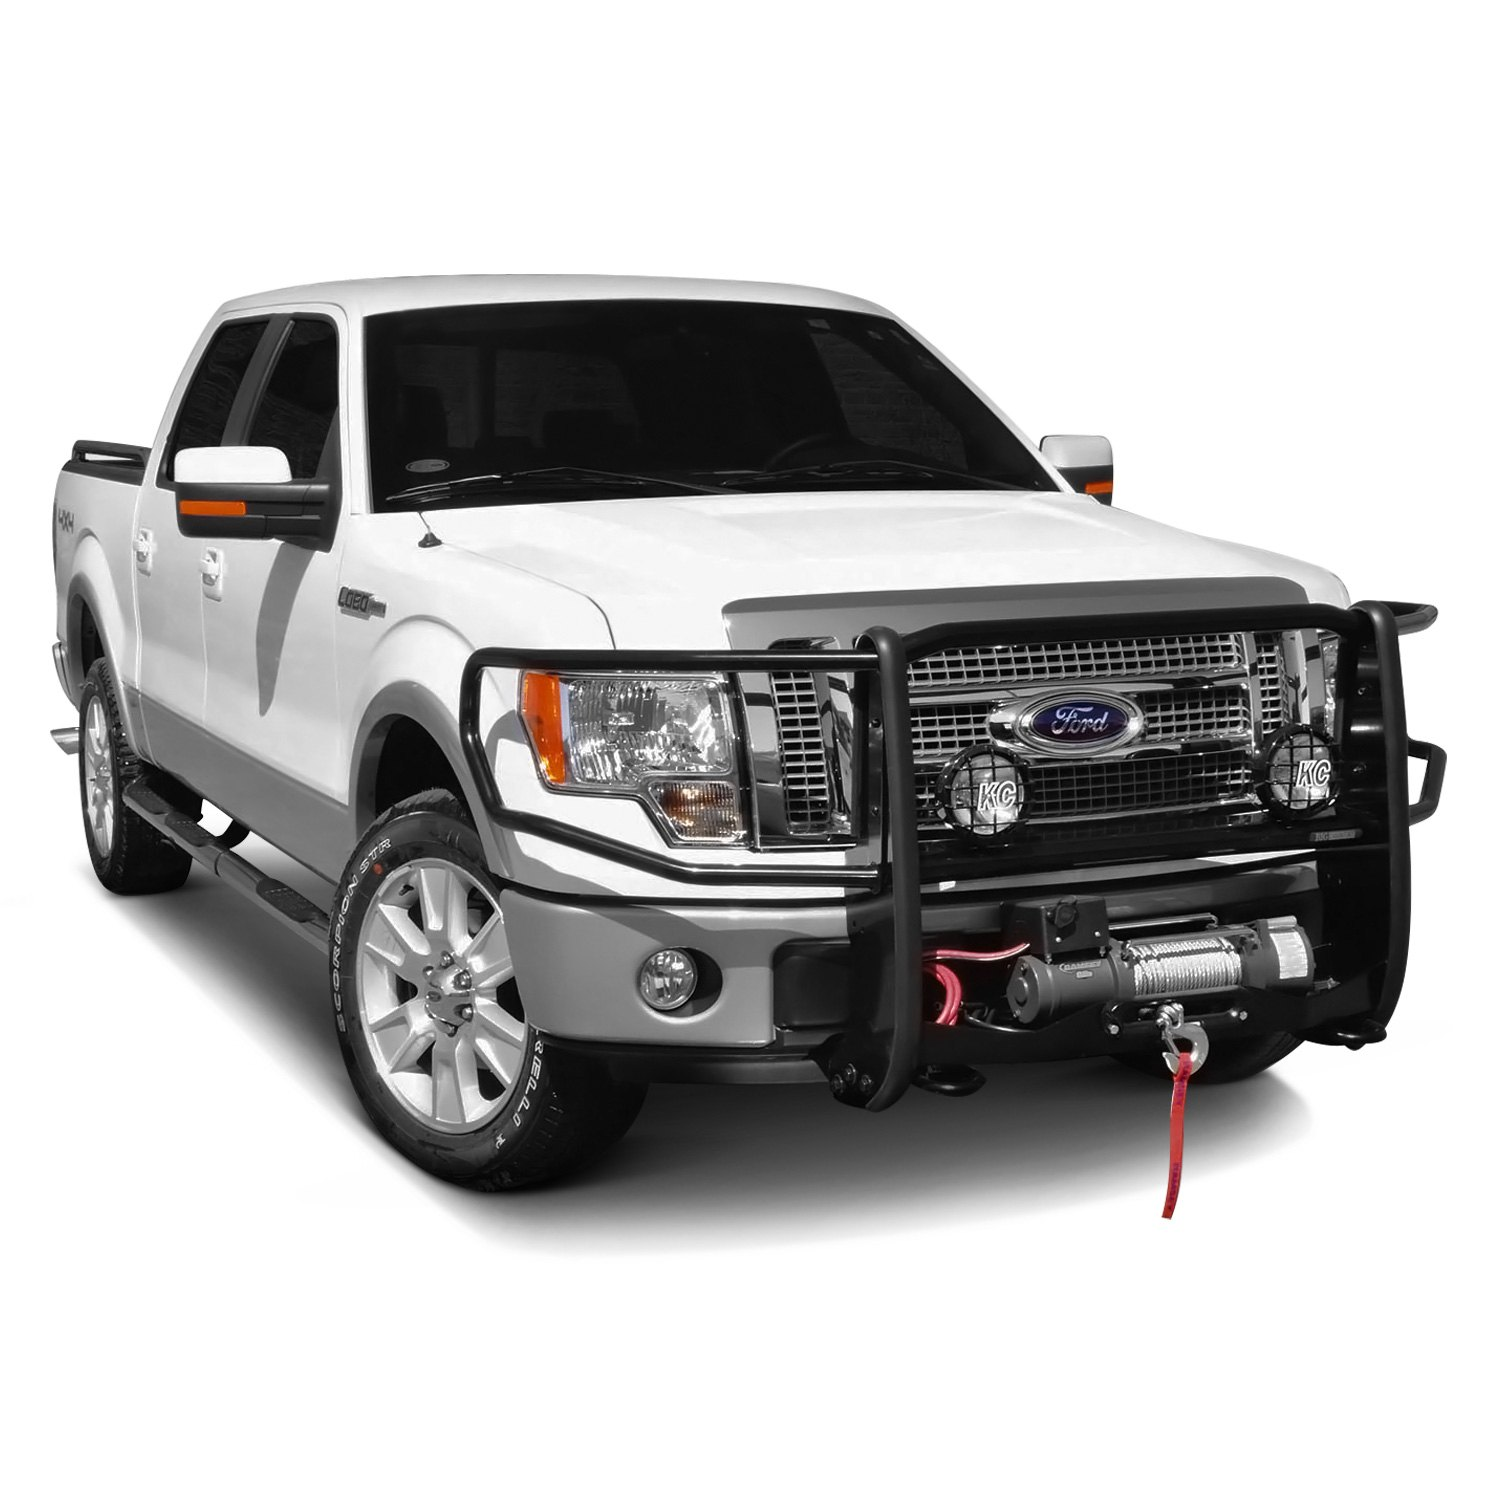 rhino black winch mount with brush guard installed